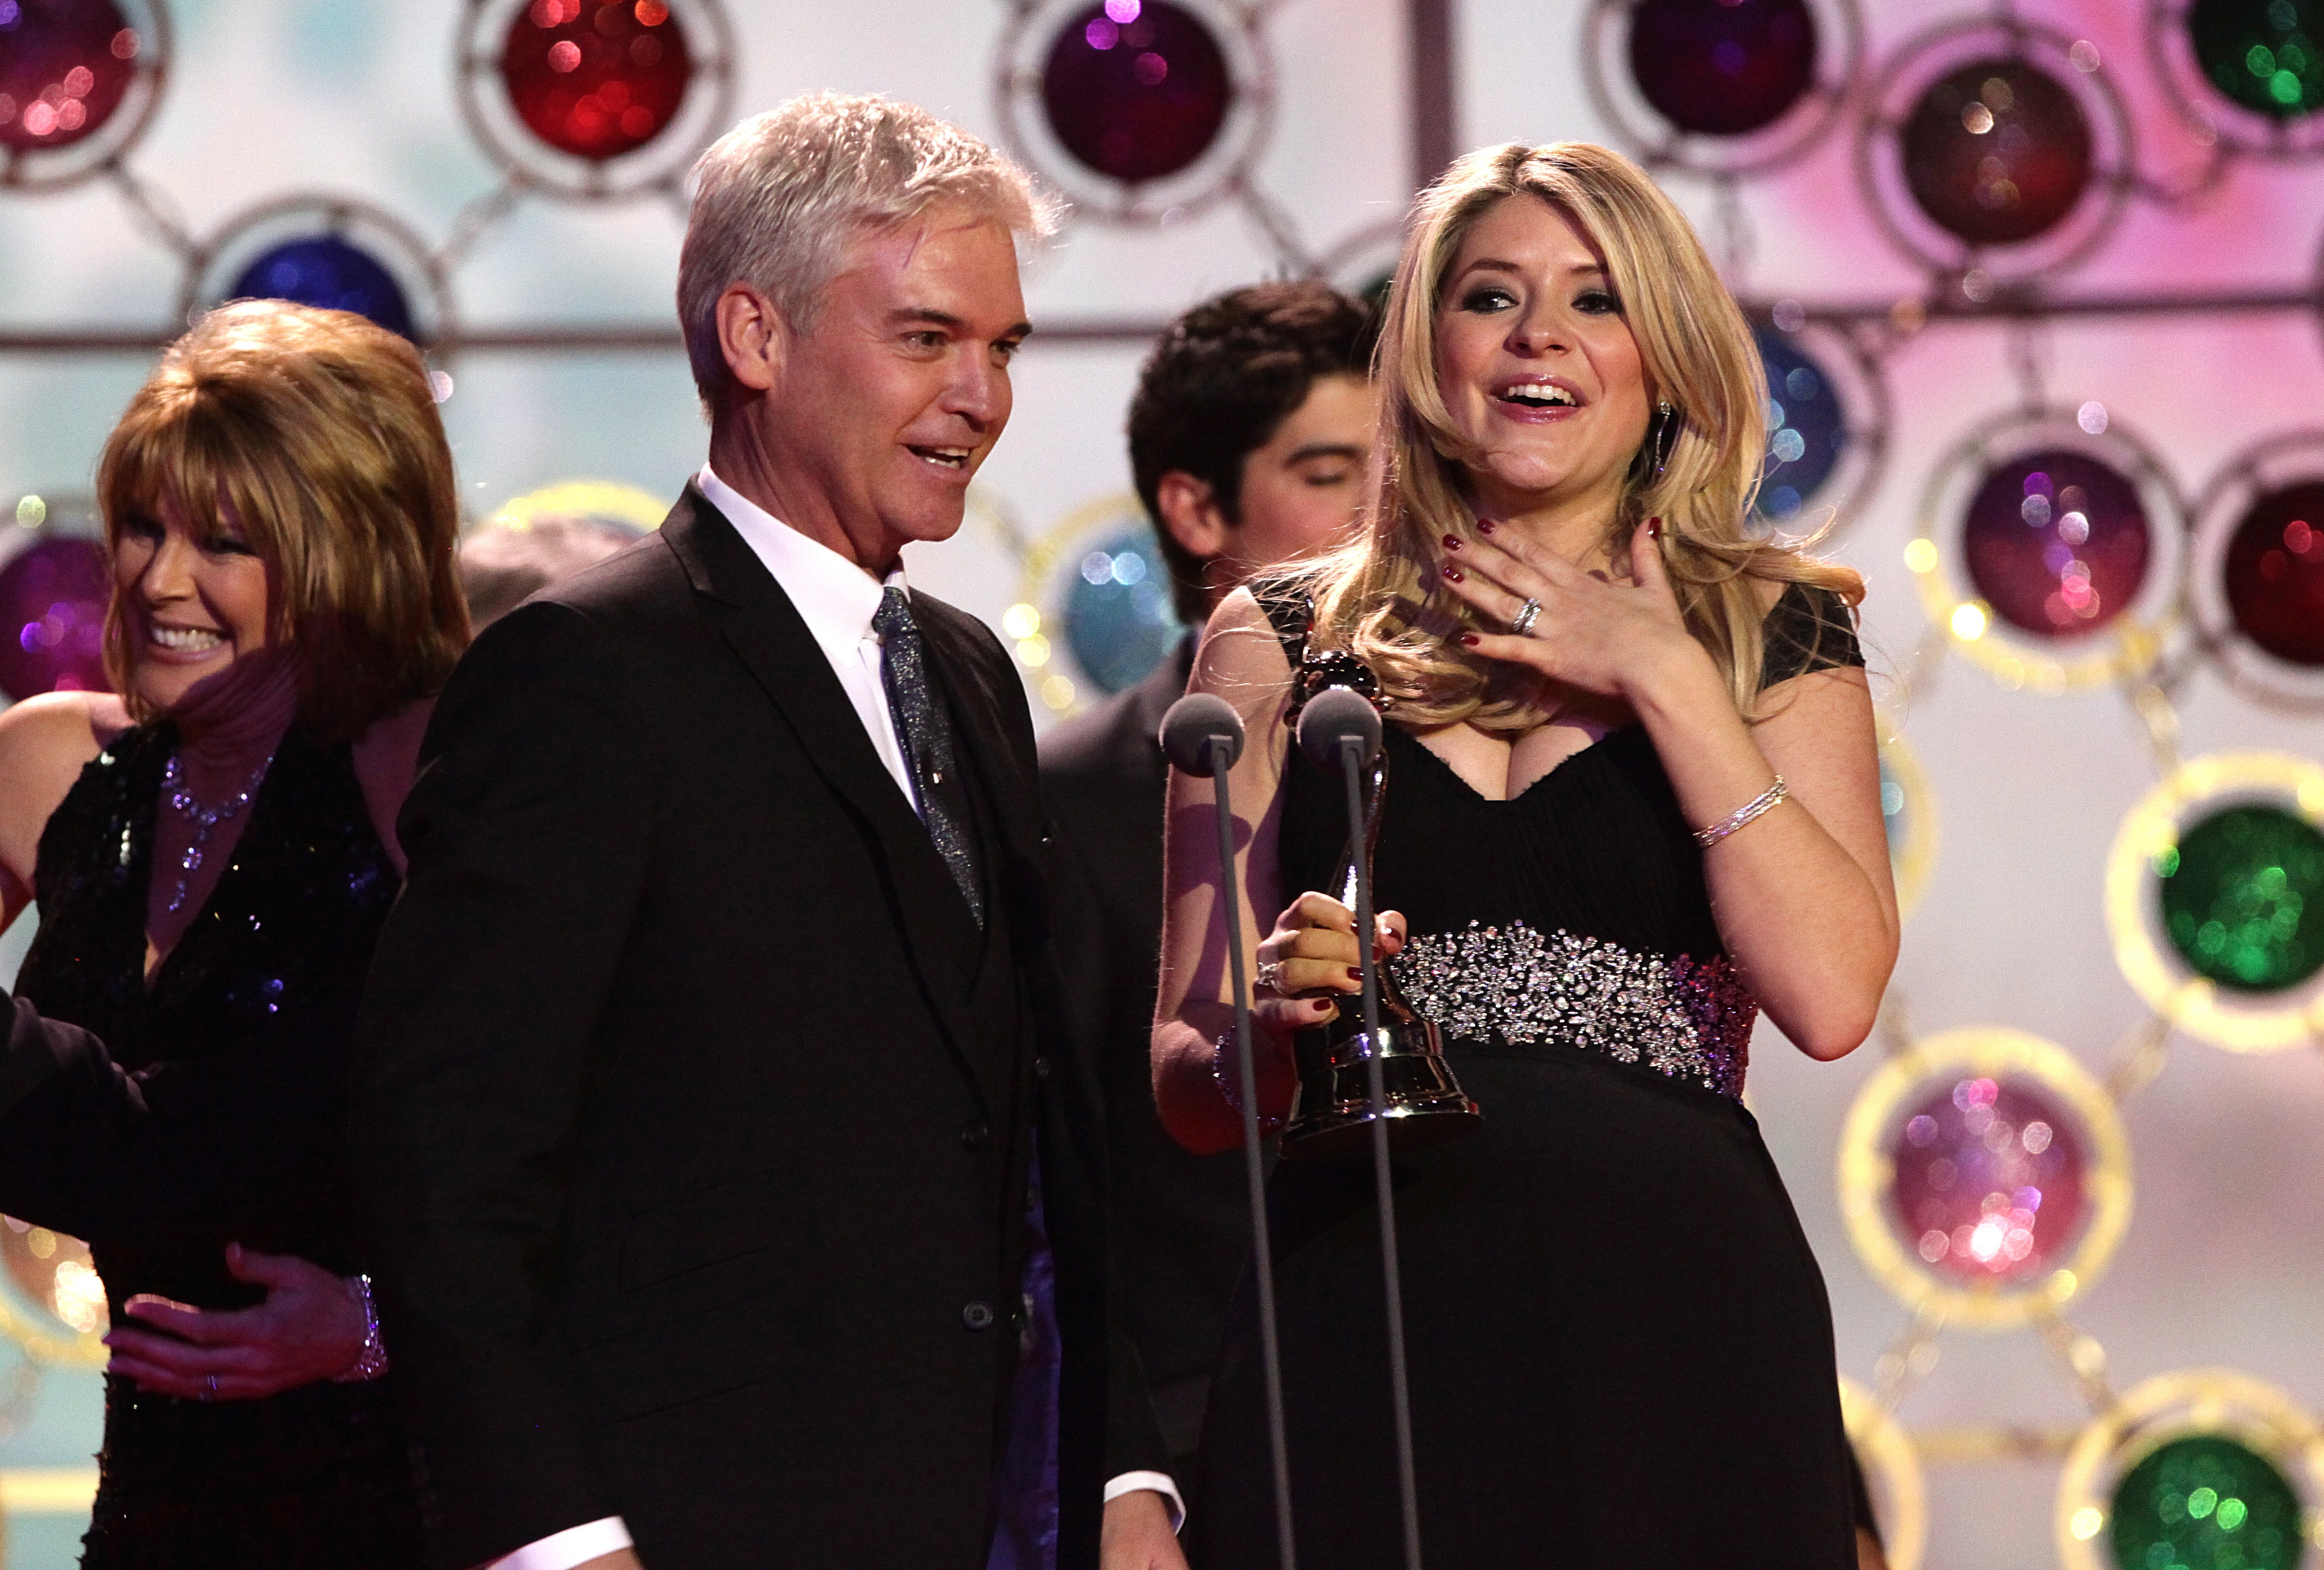 Phillip Schofield and Holly Willoughby on stage collecting the award for Best Magazine during the 2011 National Television Awards at the O2 Arena, London.